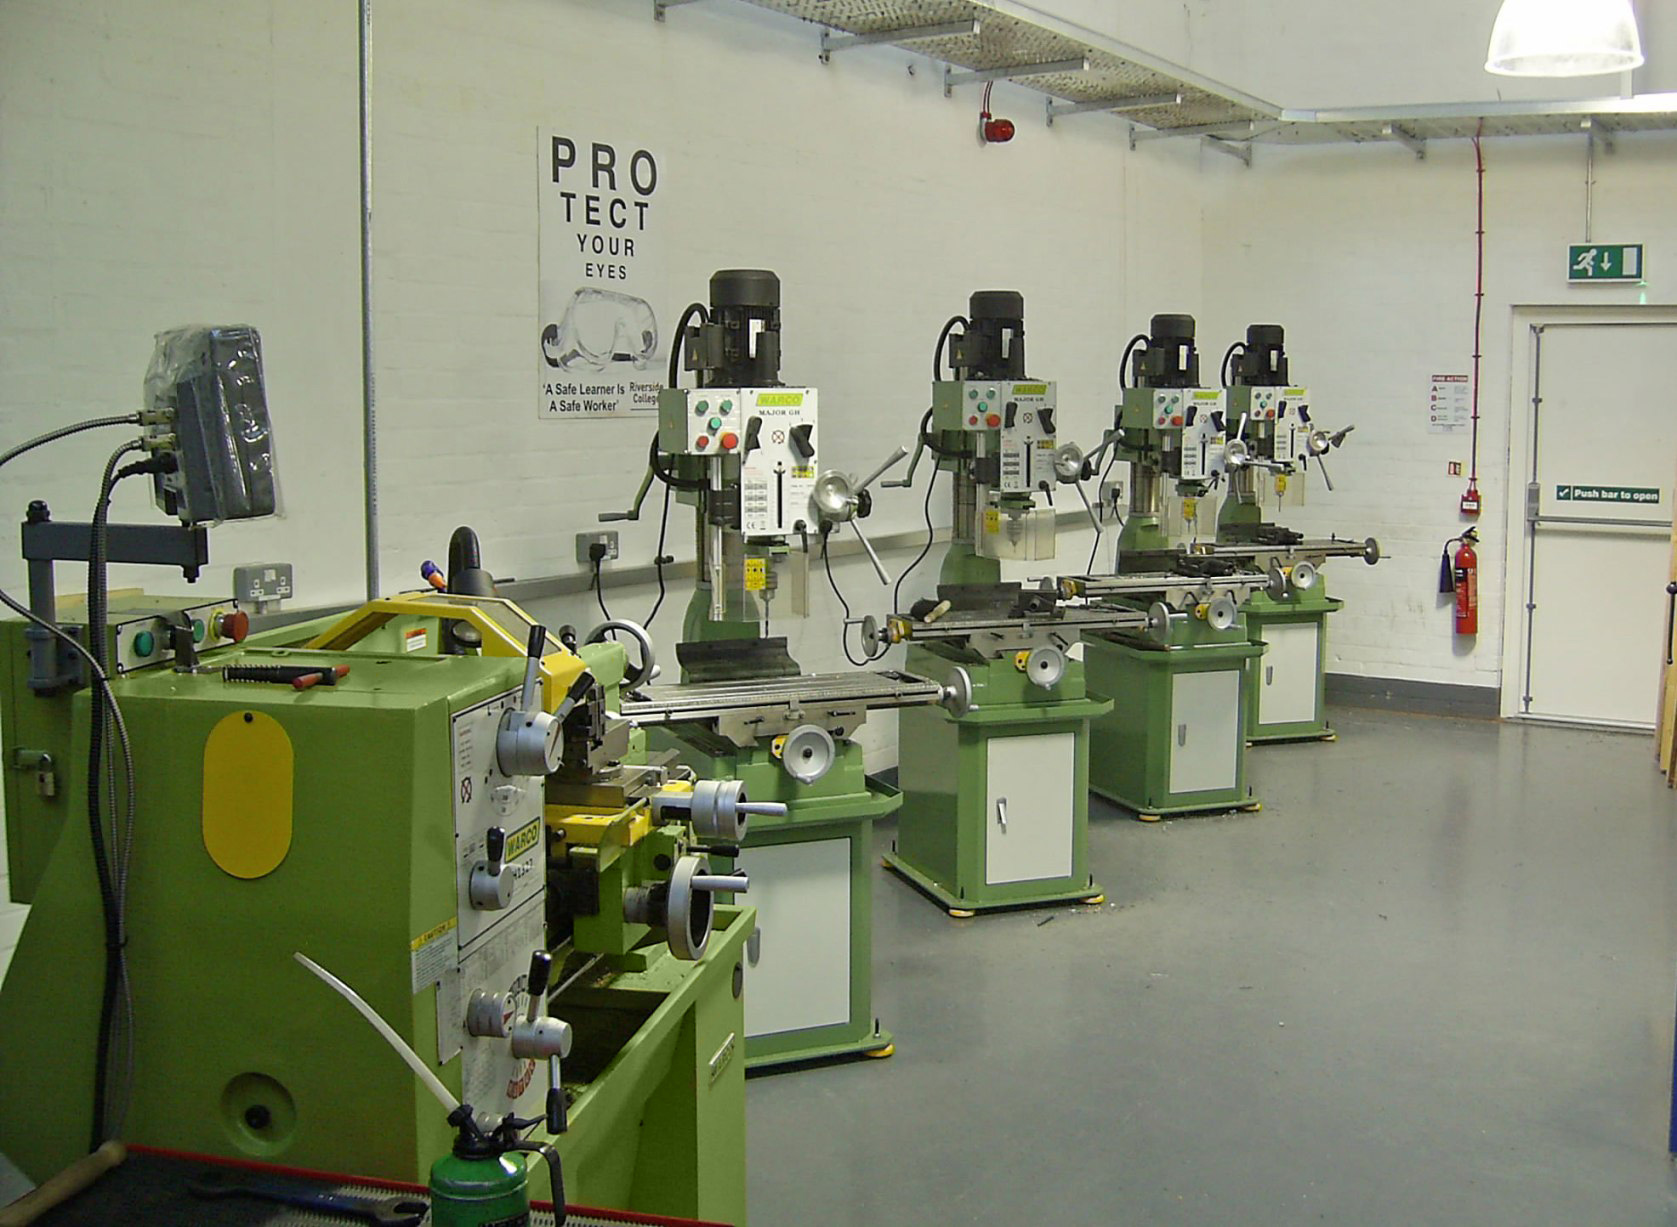 Warco Major GH milling machines